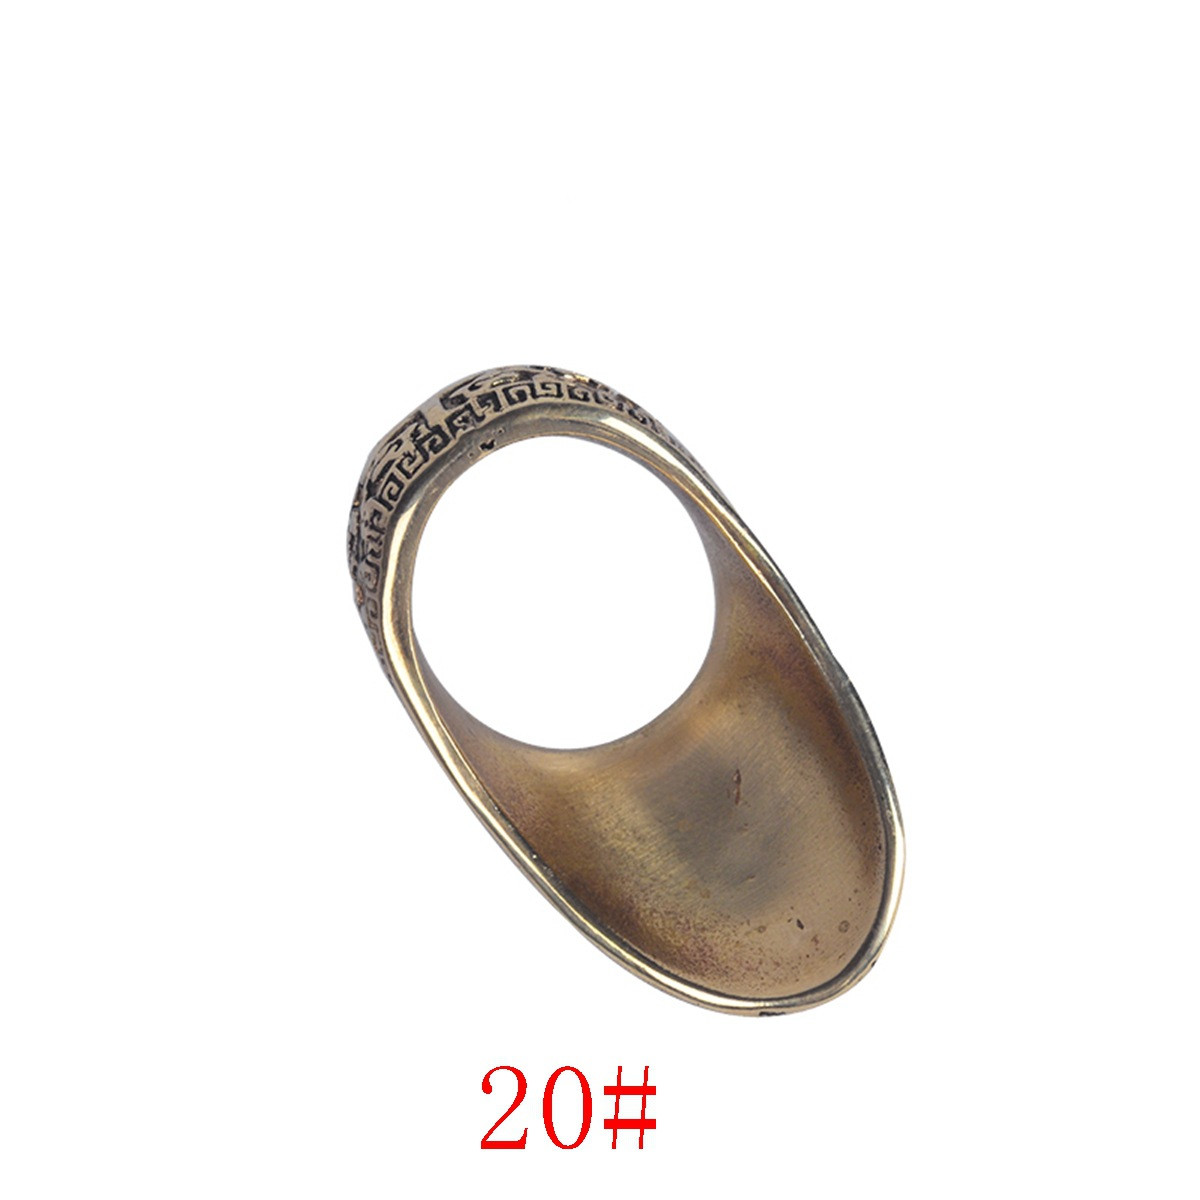 Fingerguards Protective Thumb Ring Gear Pure Copper For Archery Bow Hunting